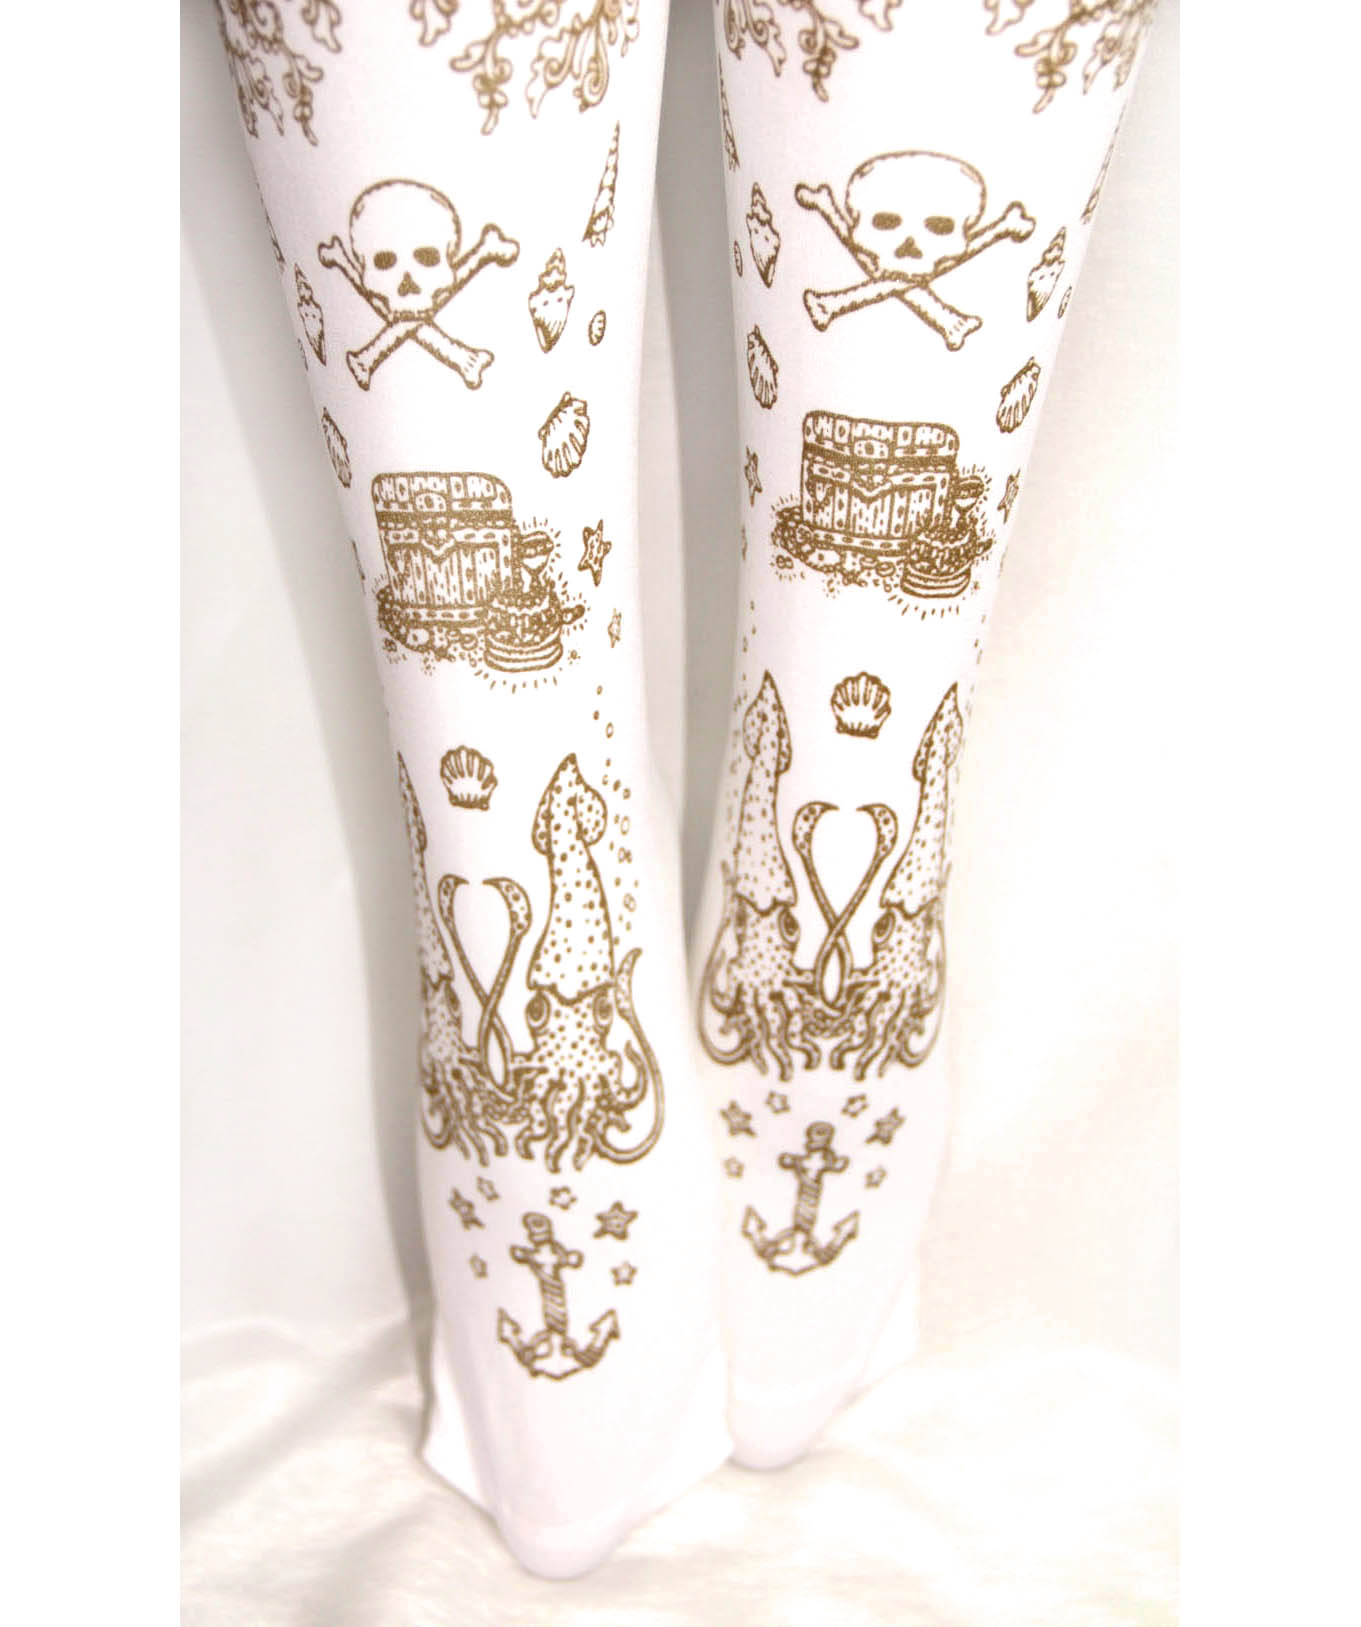 603dadec20c ... Narwhal Printed Tights Gold on White Pirate Tattoo Print Sailor Lolita  ...